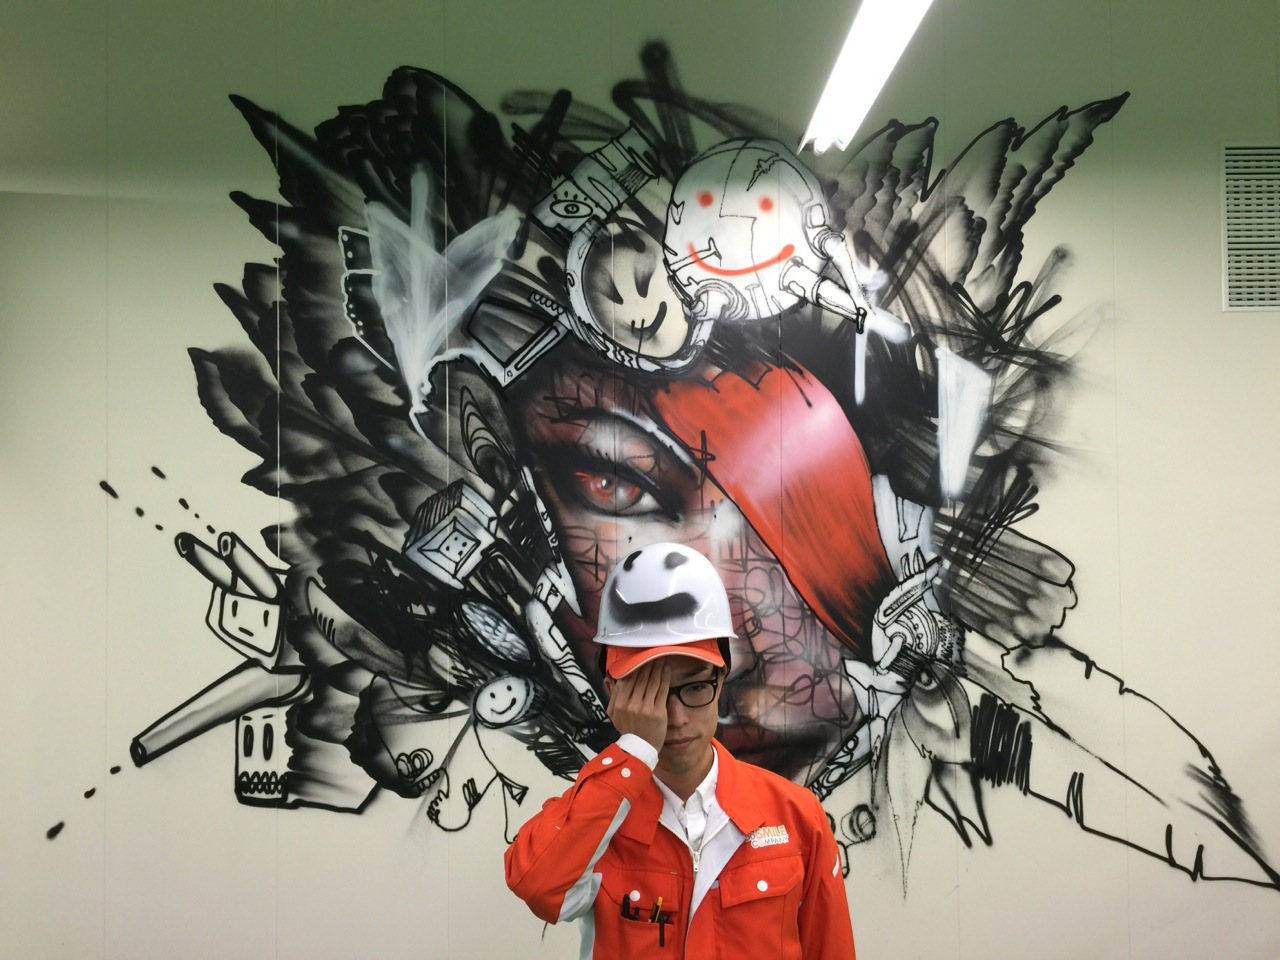 David choe mural at good smile company factory for David choe mural